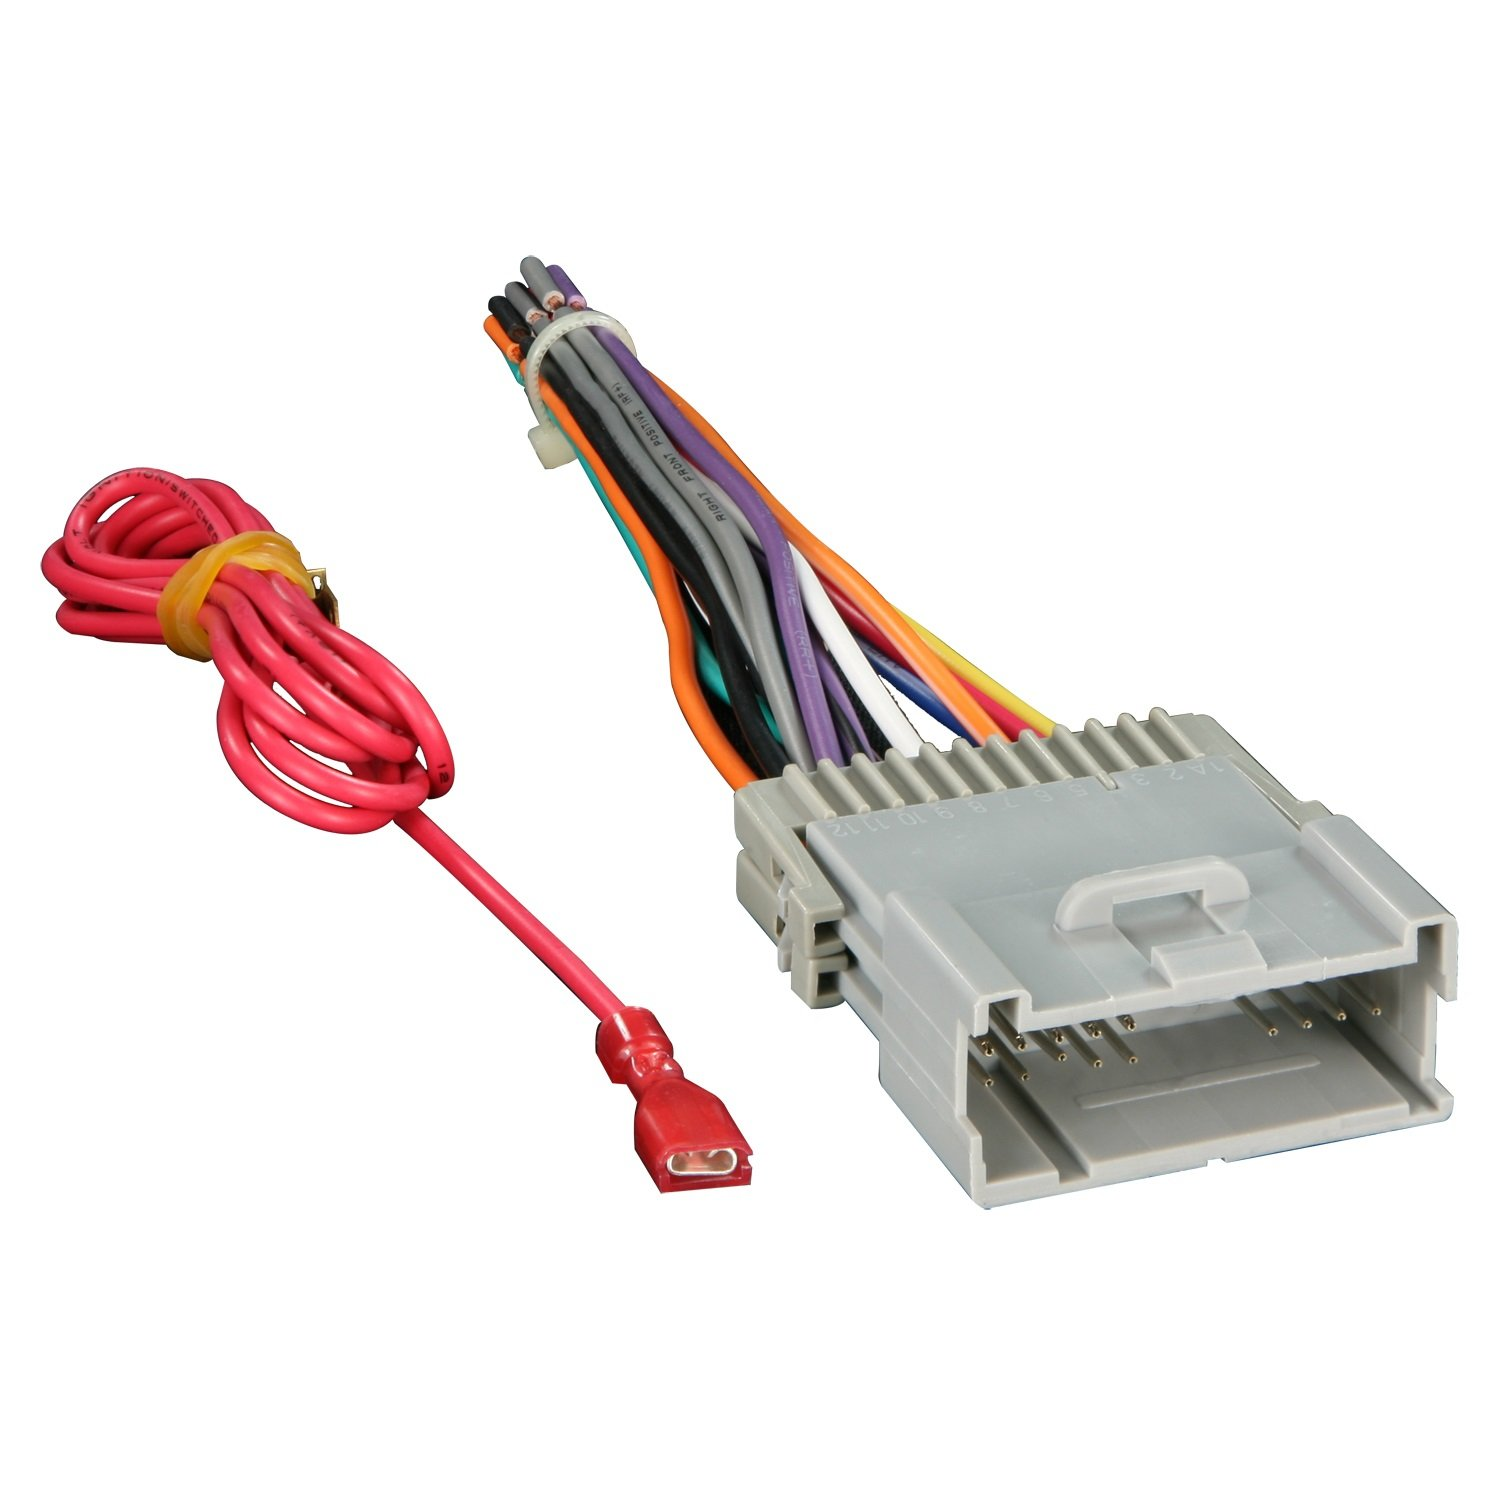 61eewxp9orL._SL1500_ amazon com metra 70 2003 radio wiring harness for gm 98 08 how to connect a wire harness for car stereo at bakdesigns.co